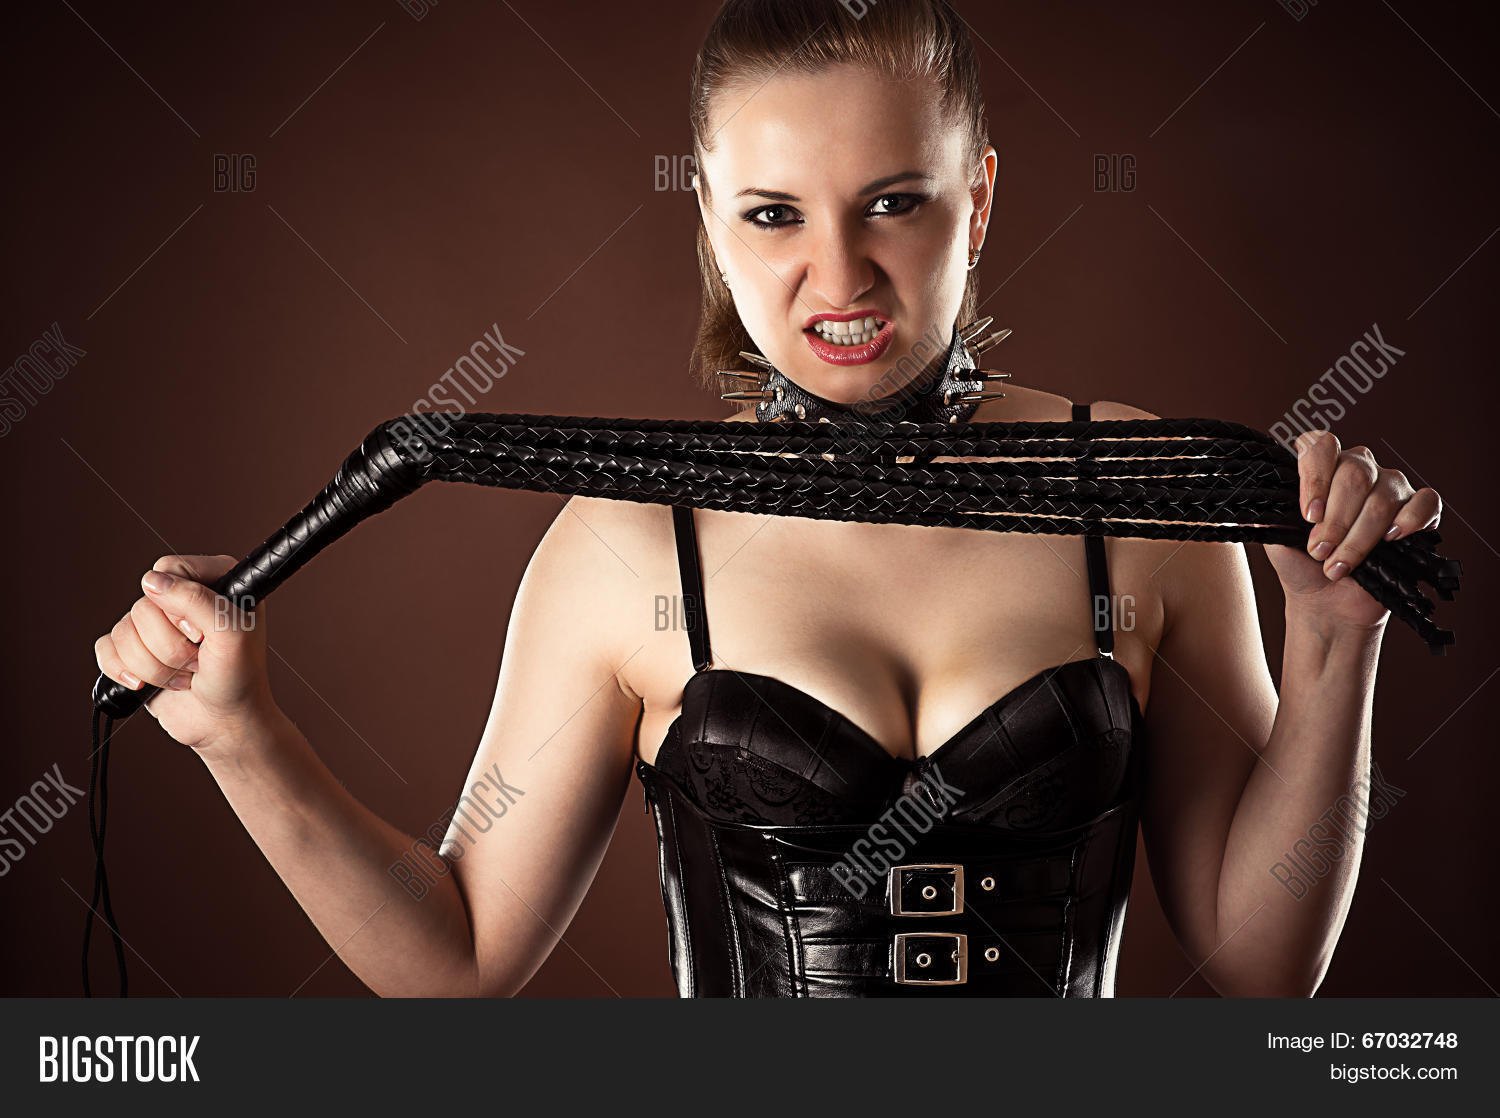 Angry dominatrix with big muscles hurts her